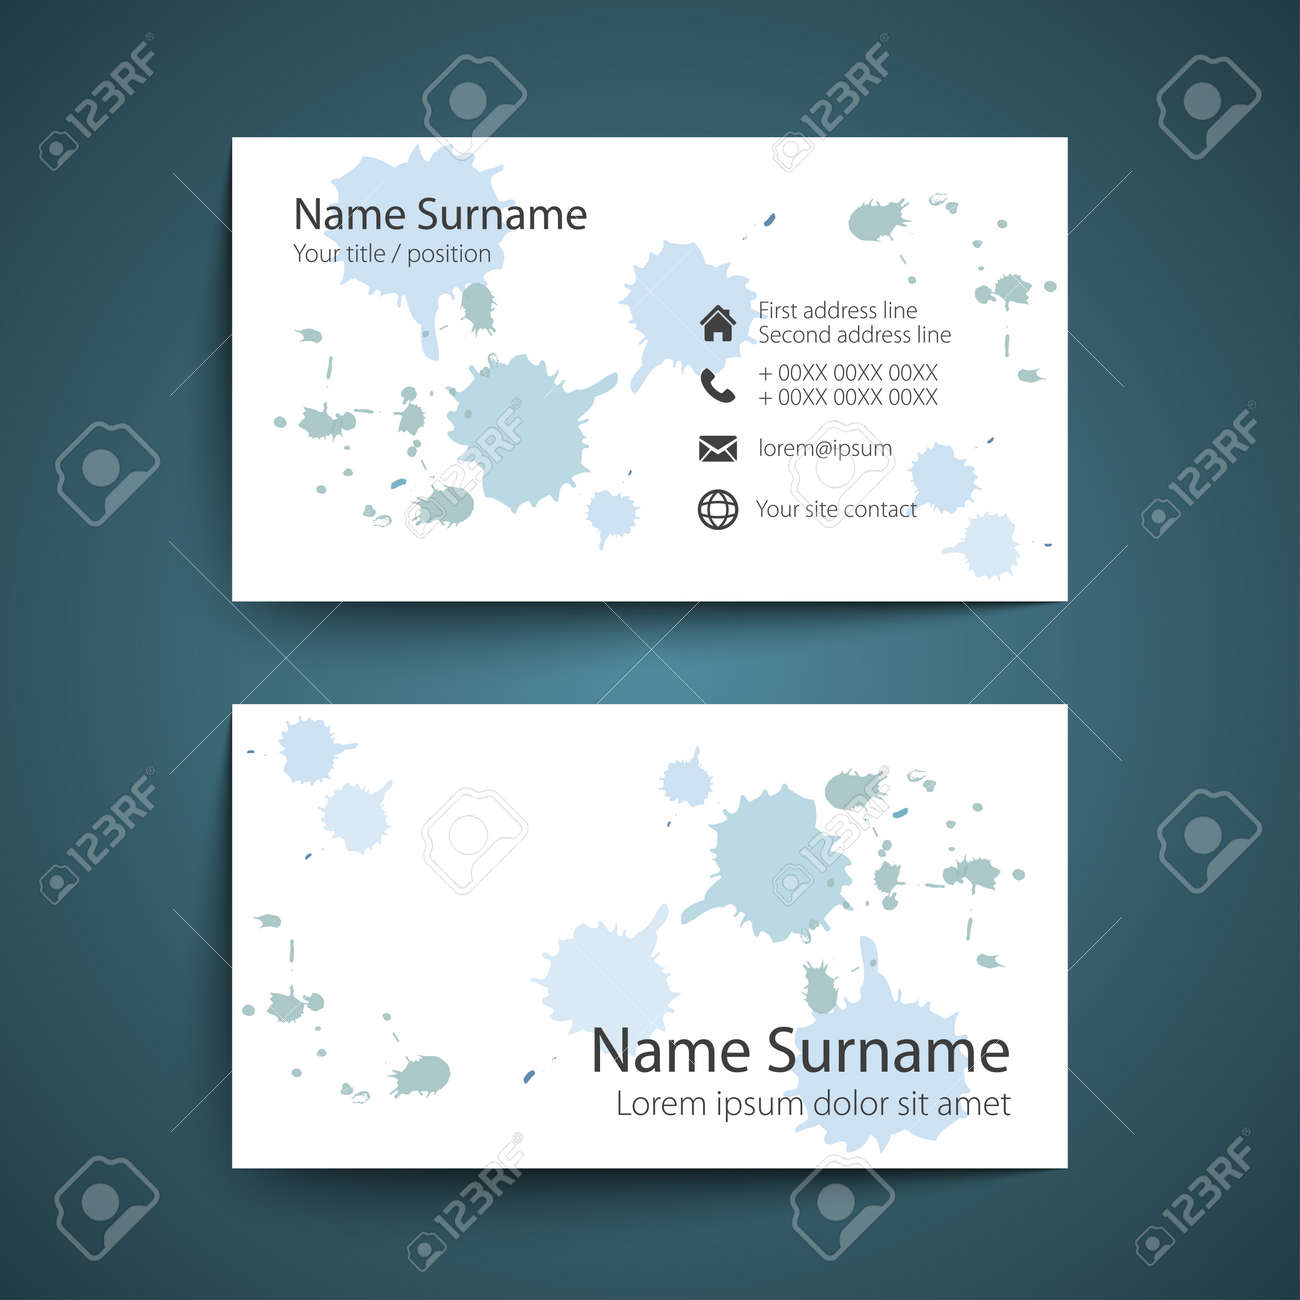 Modern Simple Business Card Set discussion essay topics